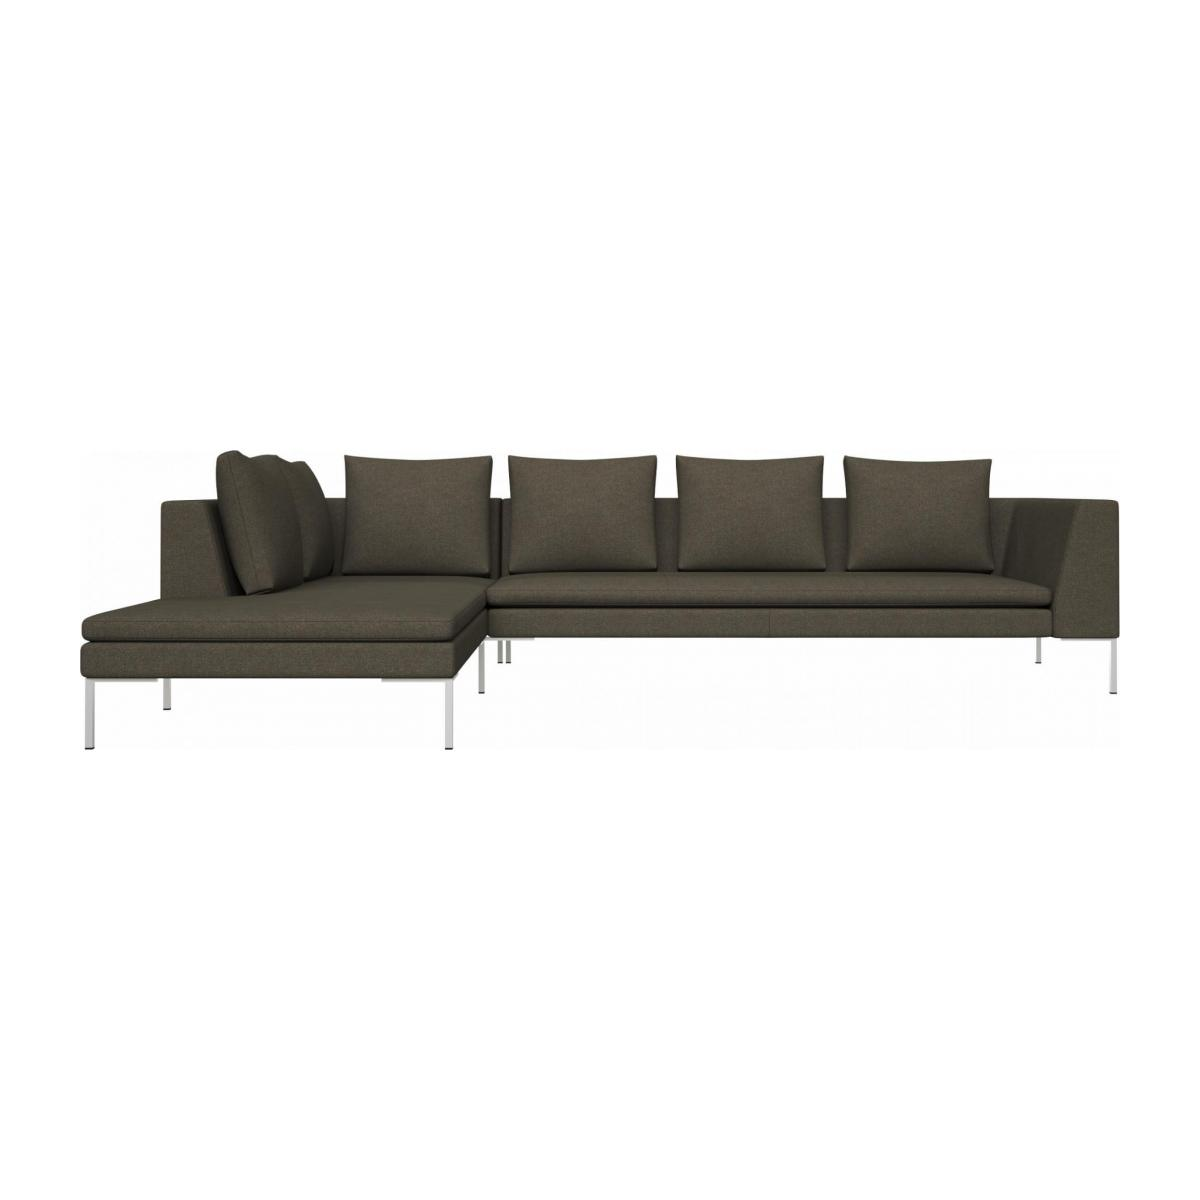 3 seater sofa with chaise longue on the left in Lecce fabric, slade grey  n°1